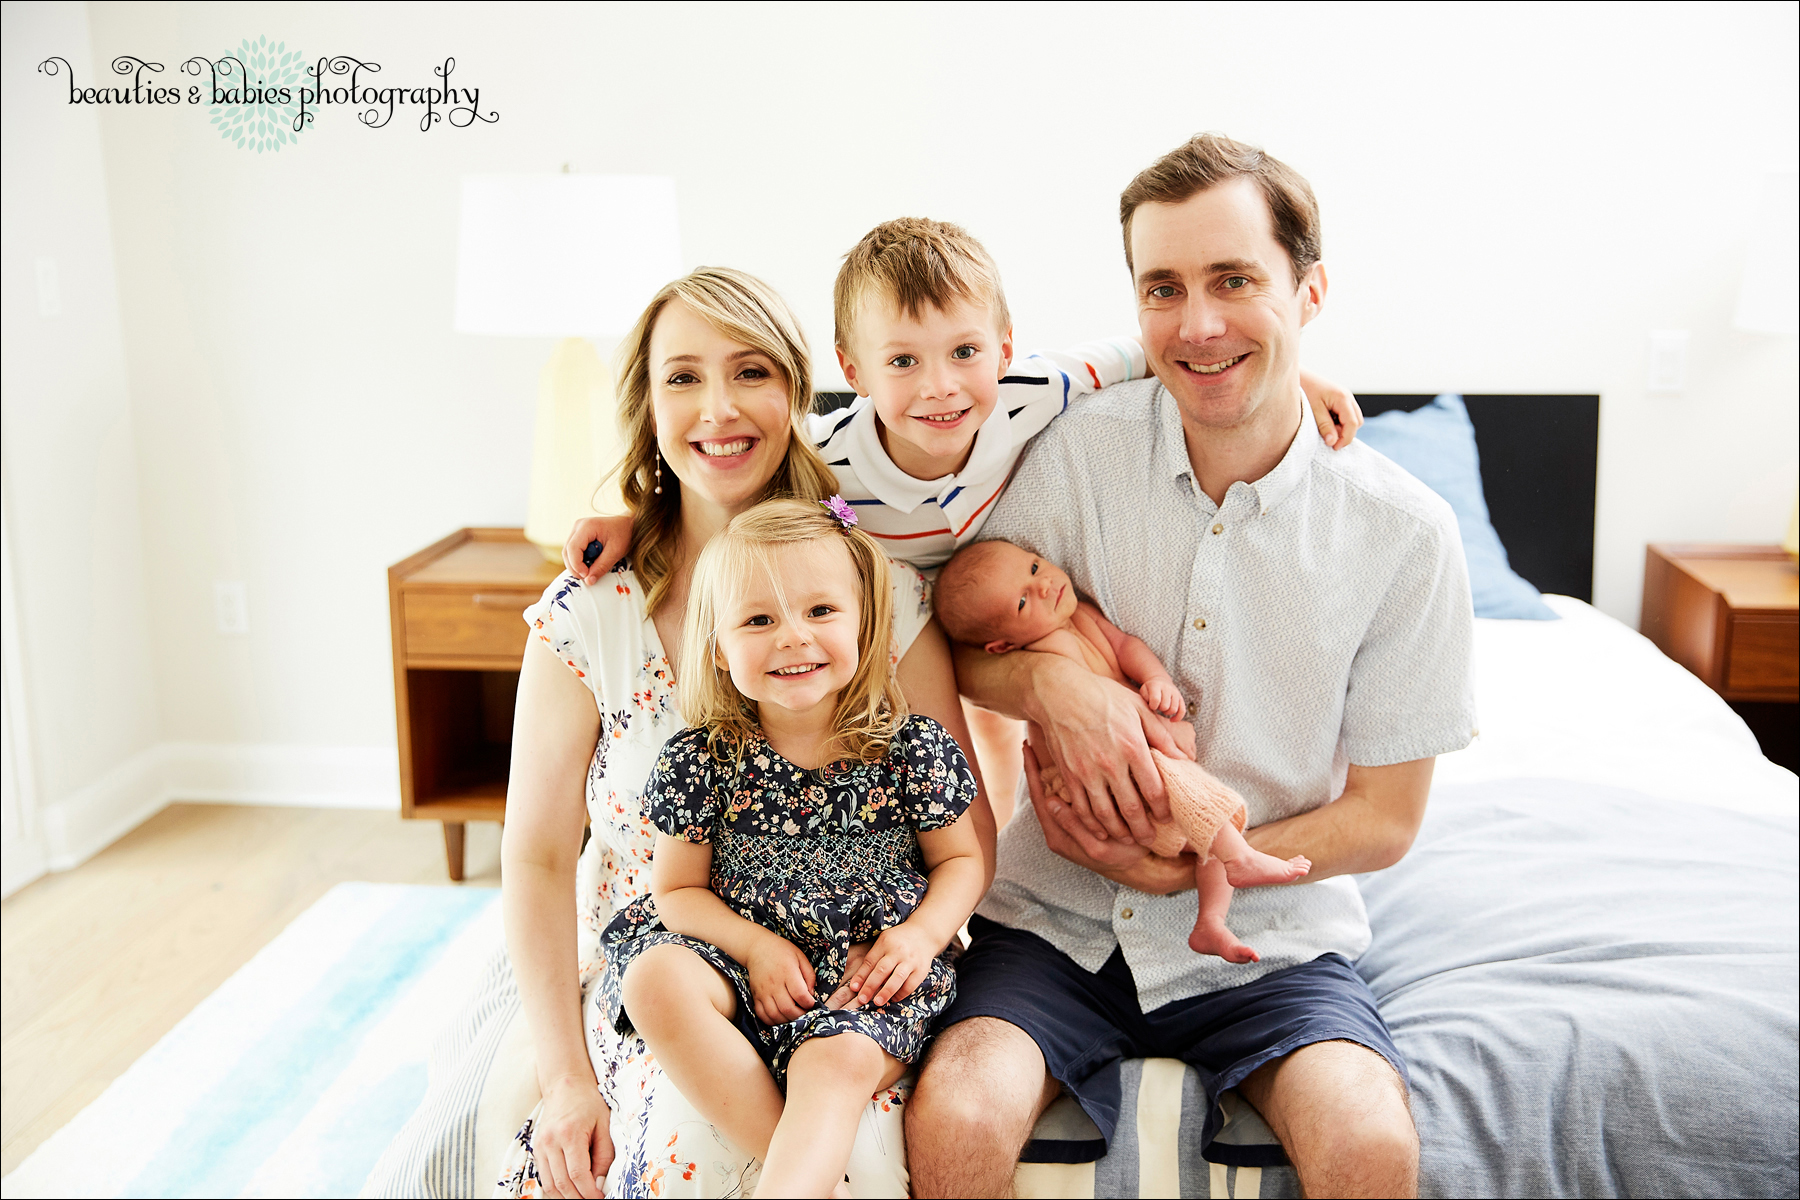 Newborn baby photography at home in Los Angeles professional photographer